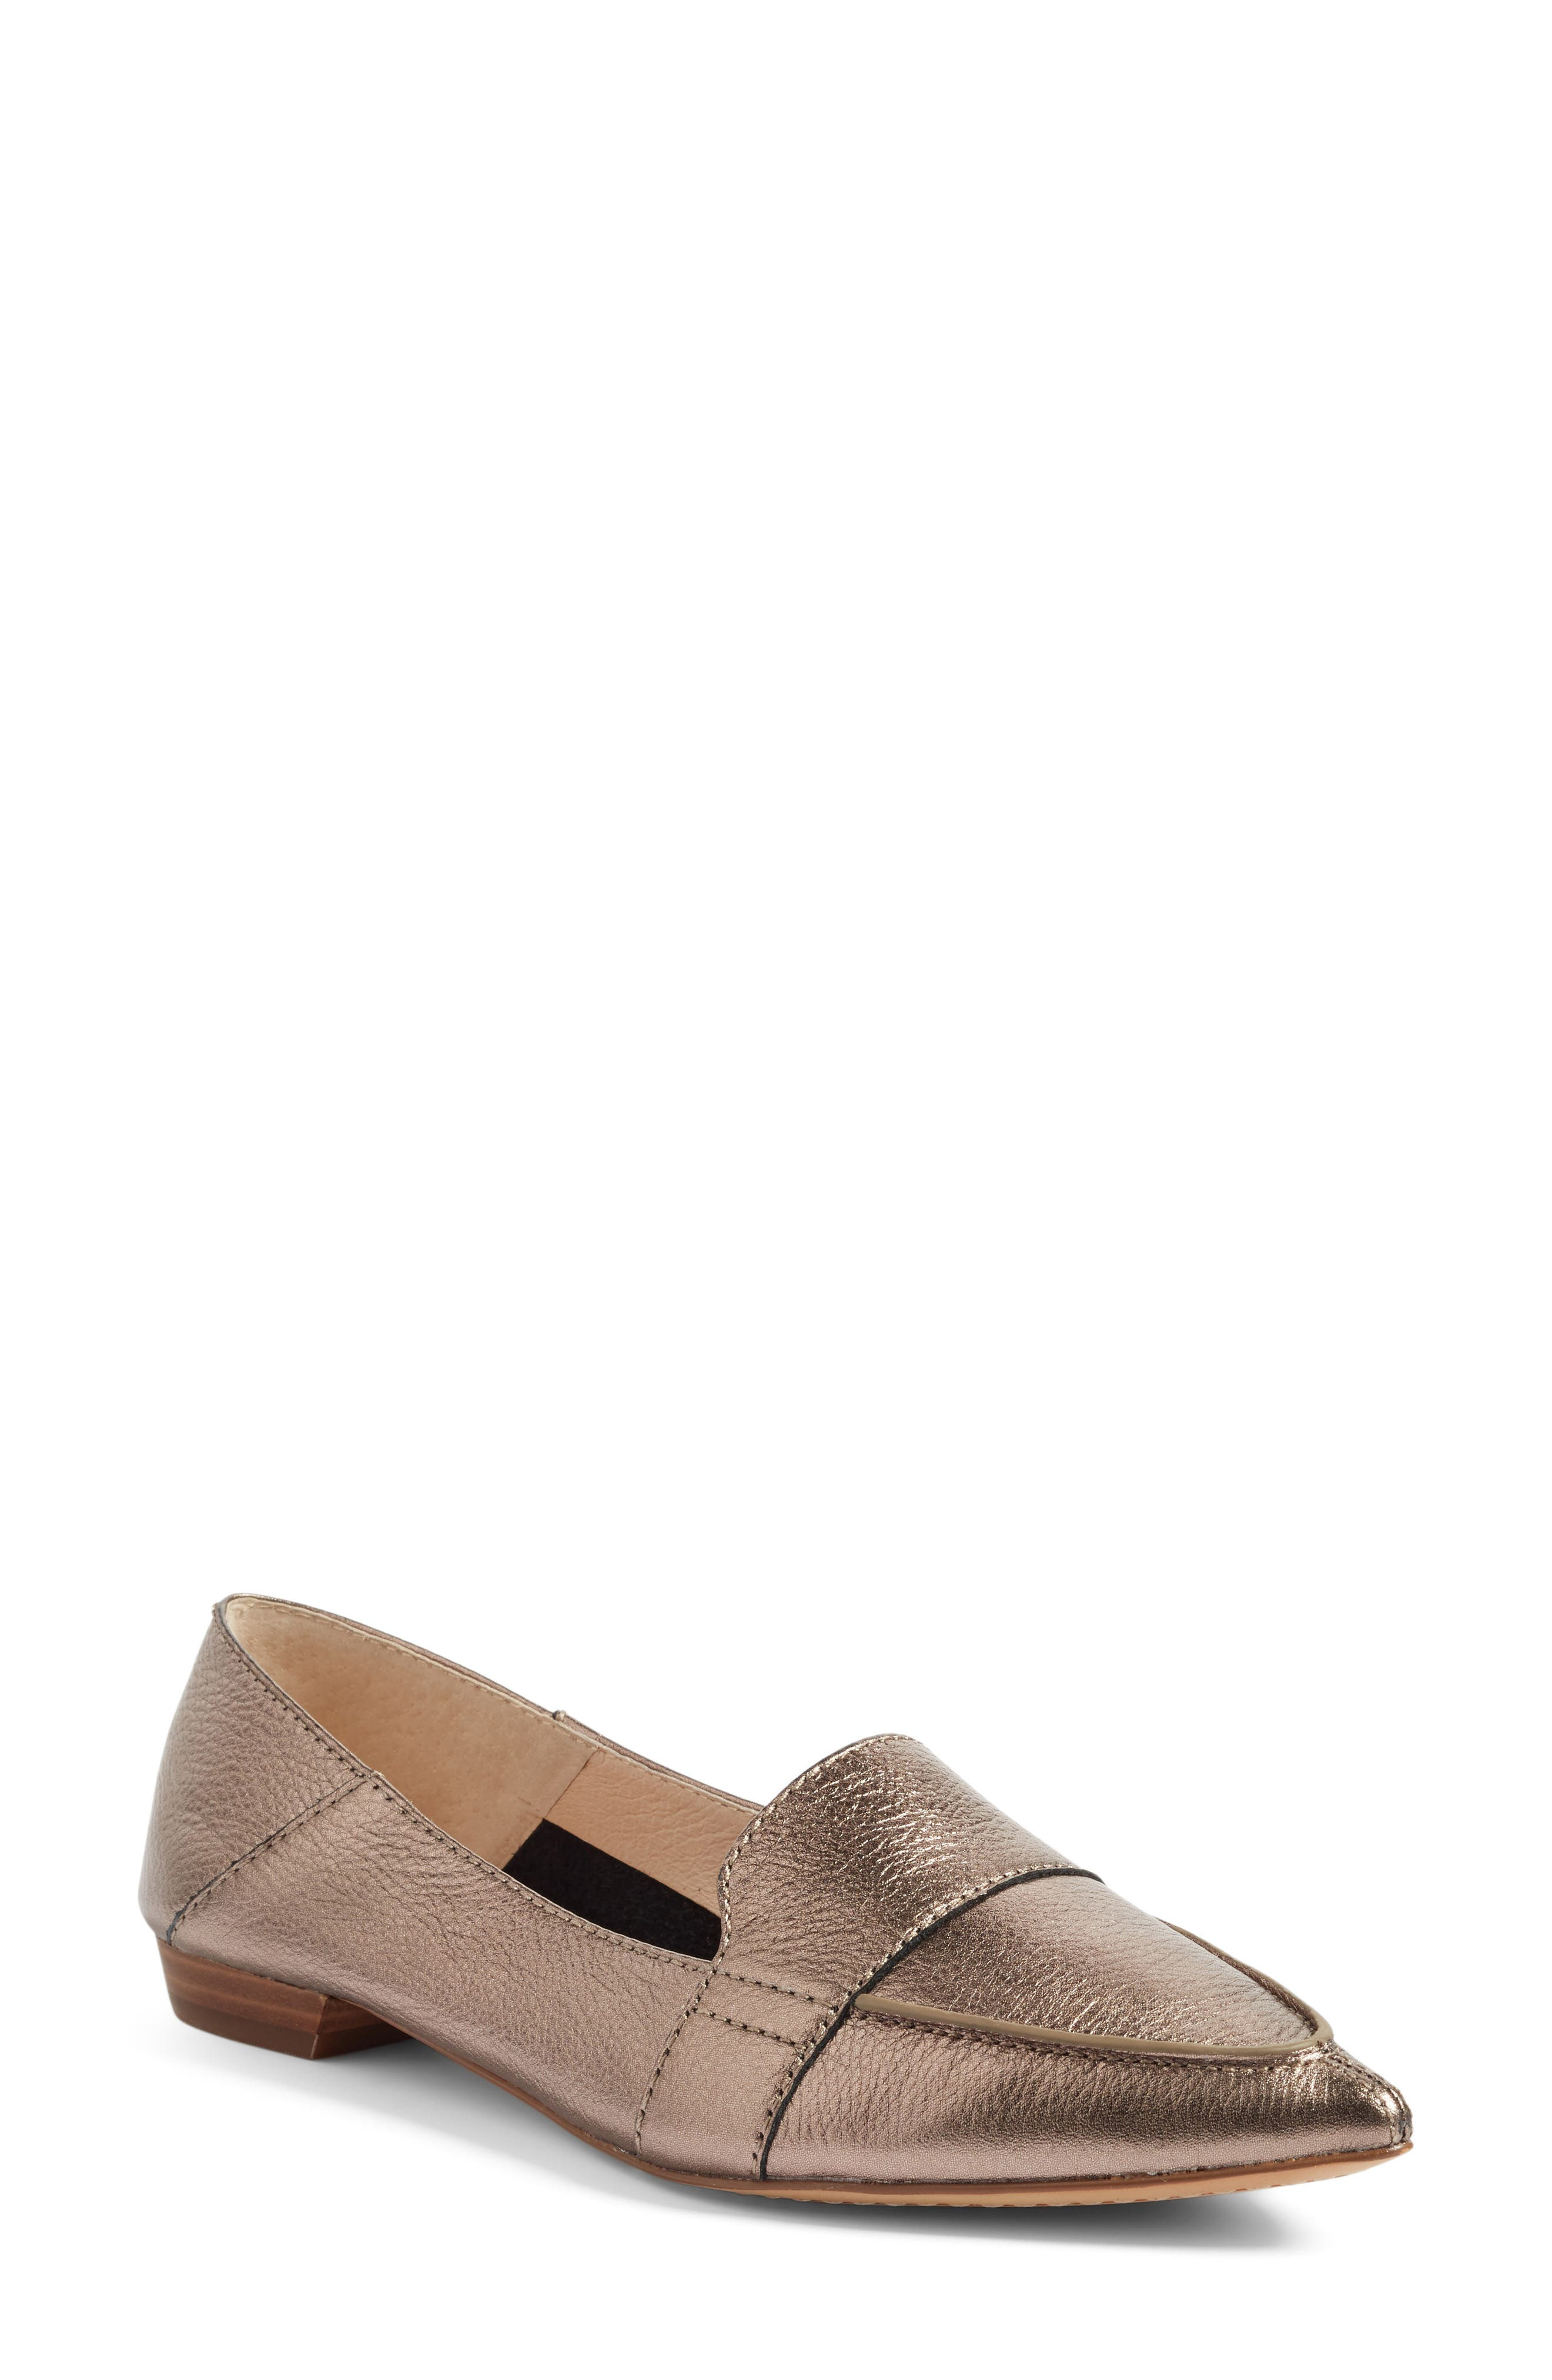 Main Image - Vince Camuto Maita Pointy Toe Flat (Women) (Nordstrom Exclusive)